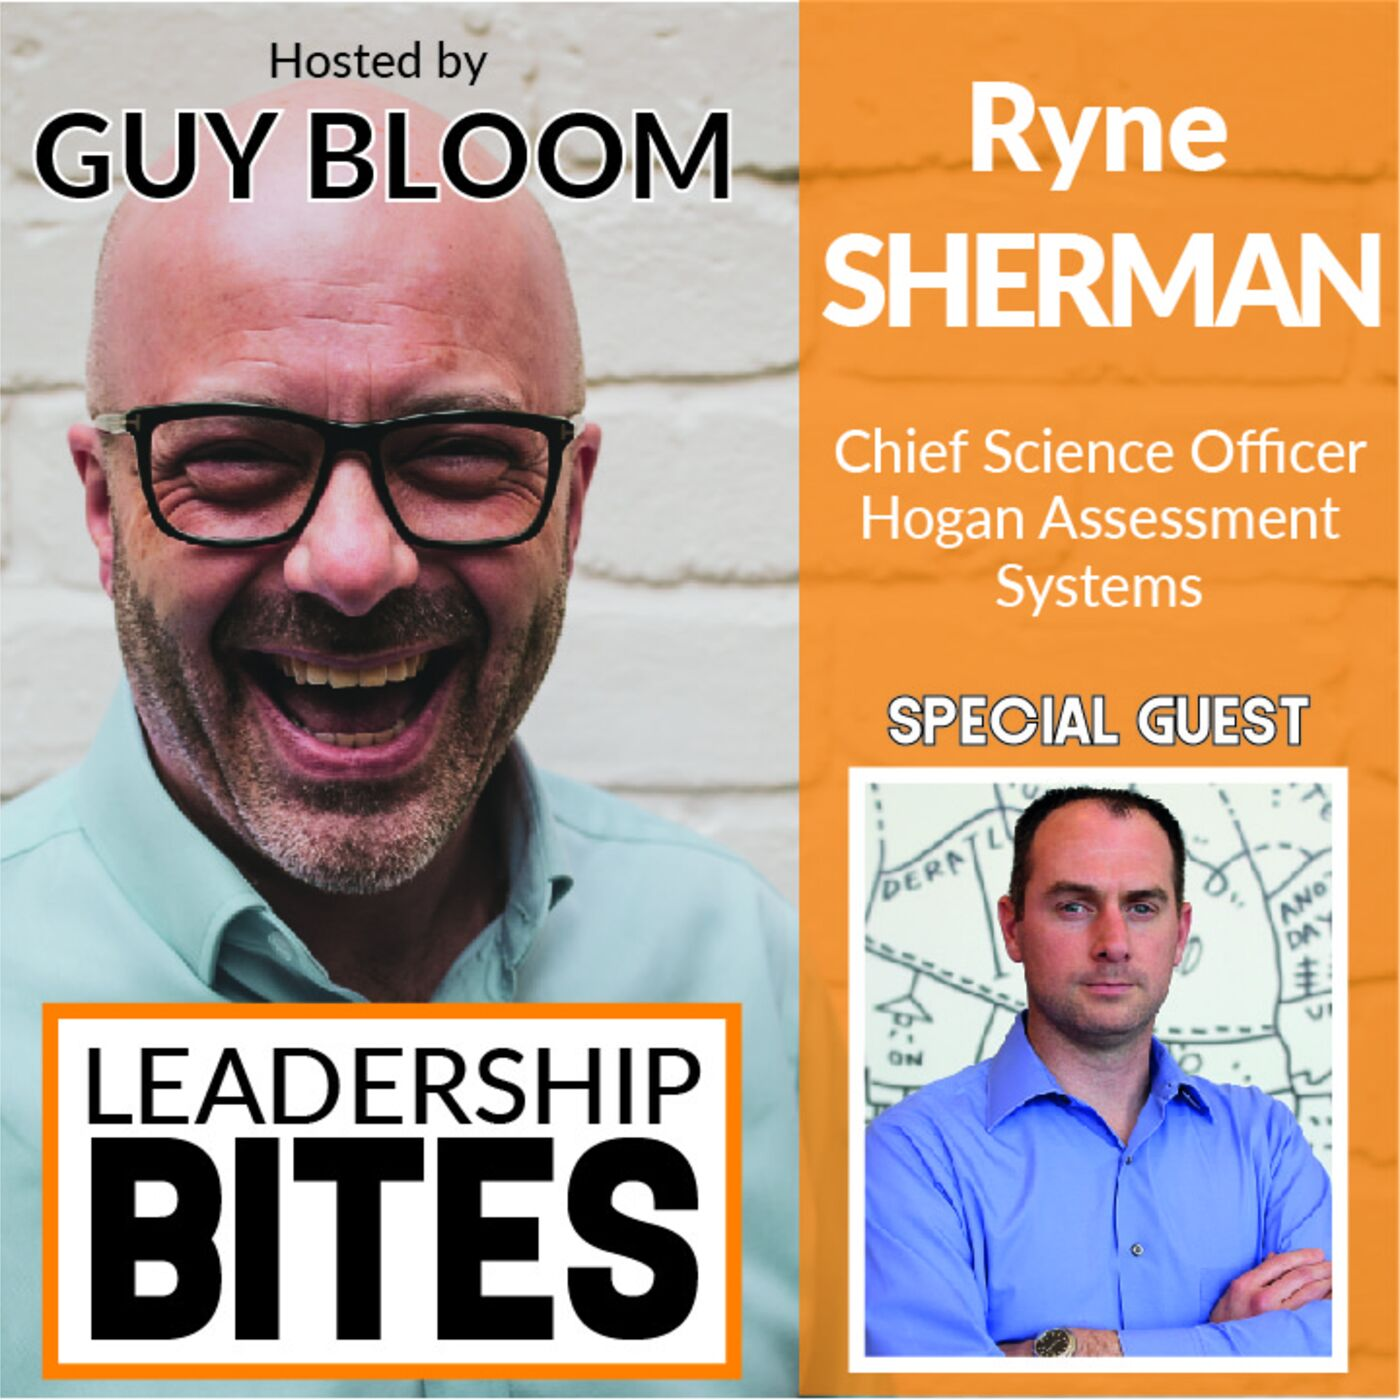 Ryne Sherman, Chief Science Officer, Hogan Assessment Systems